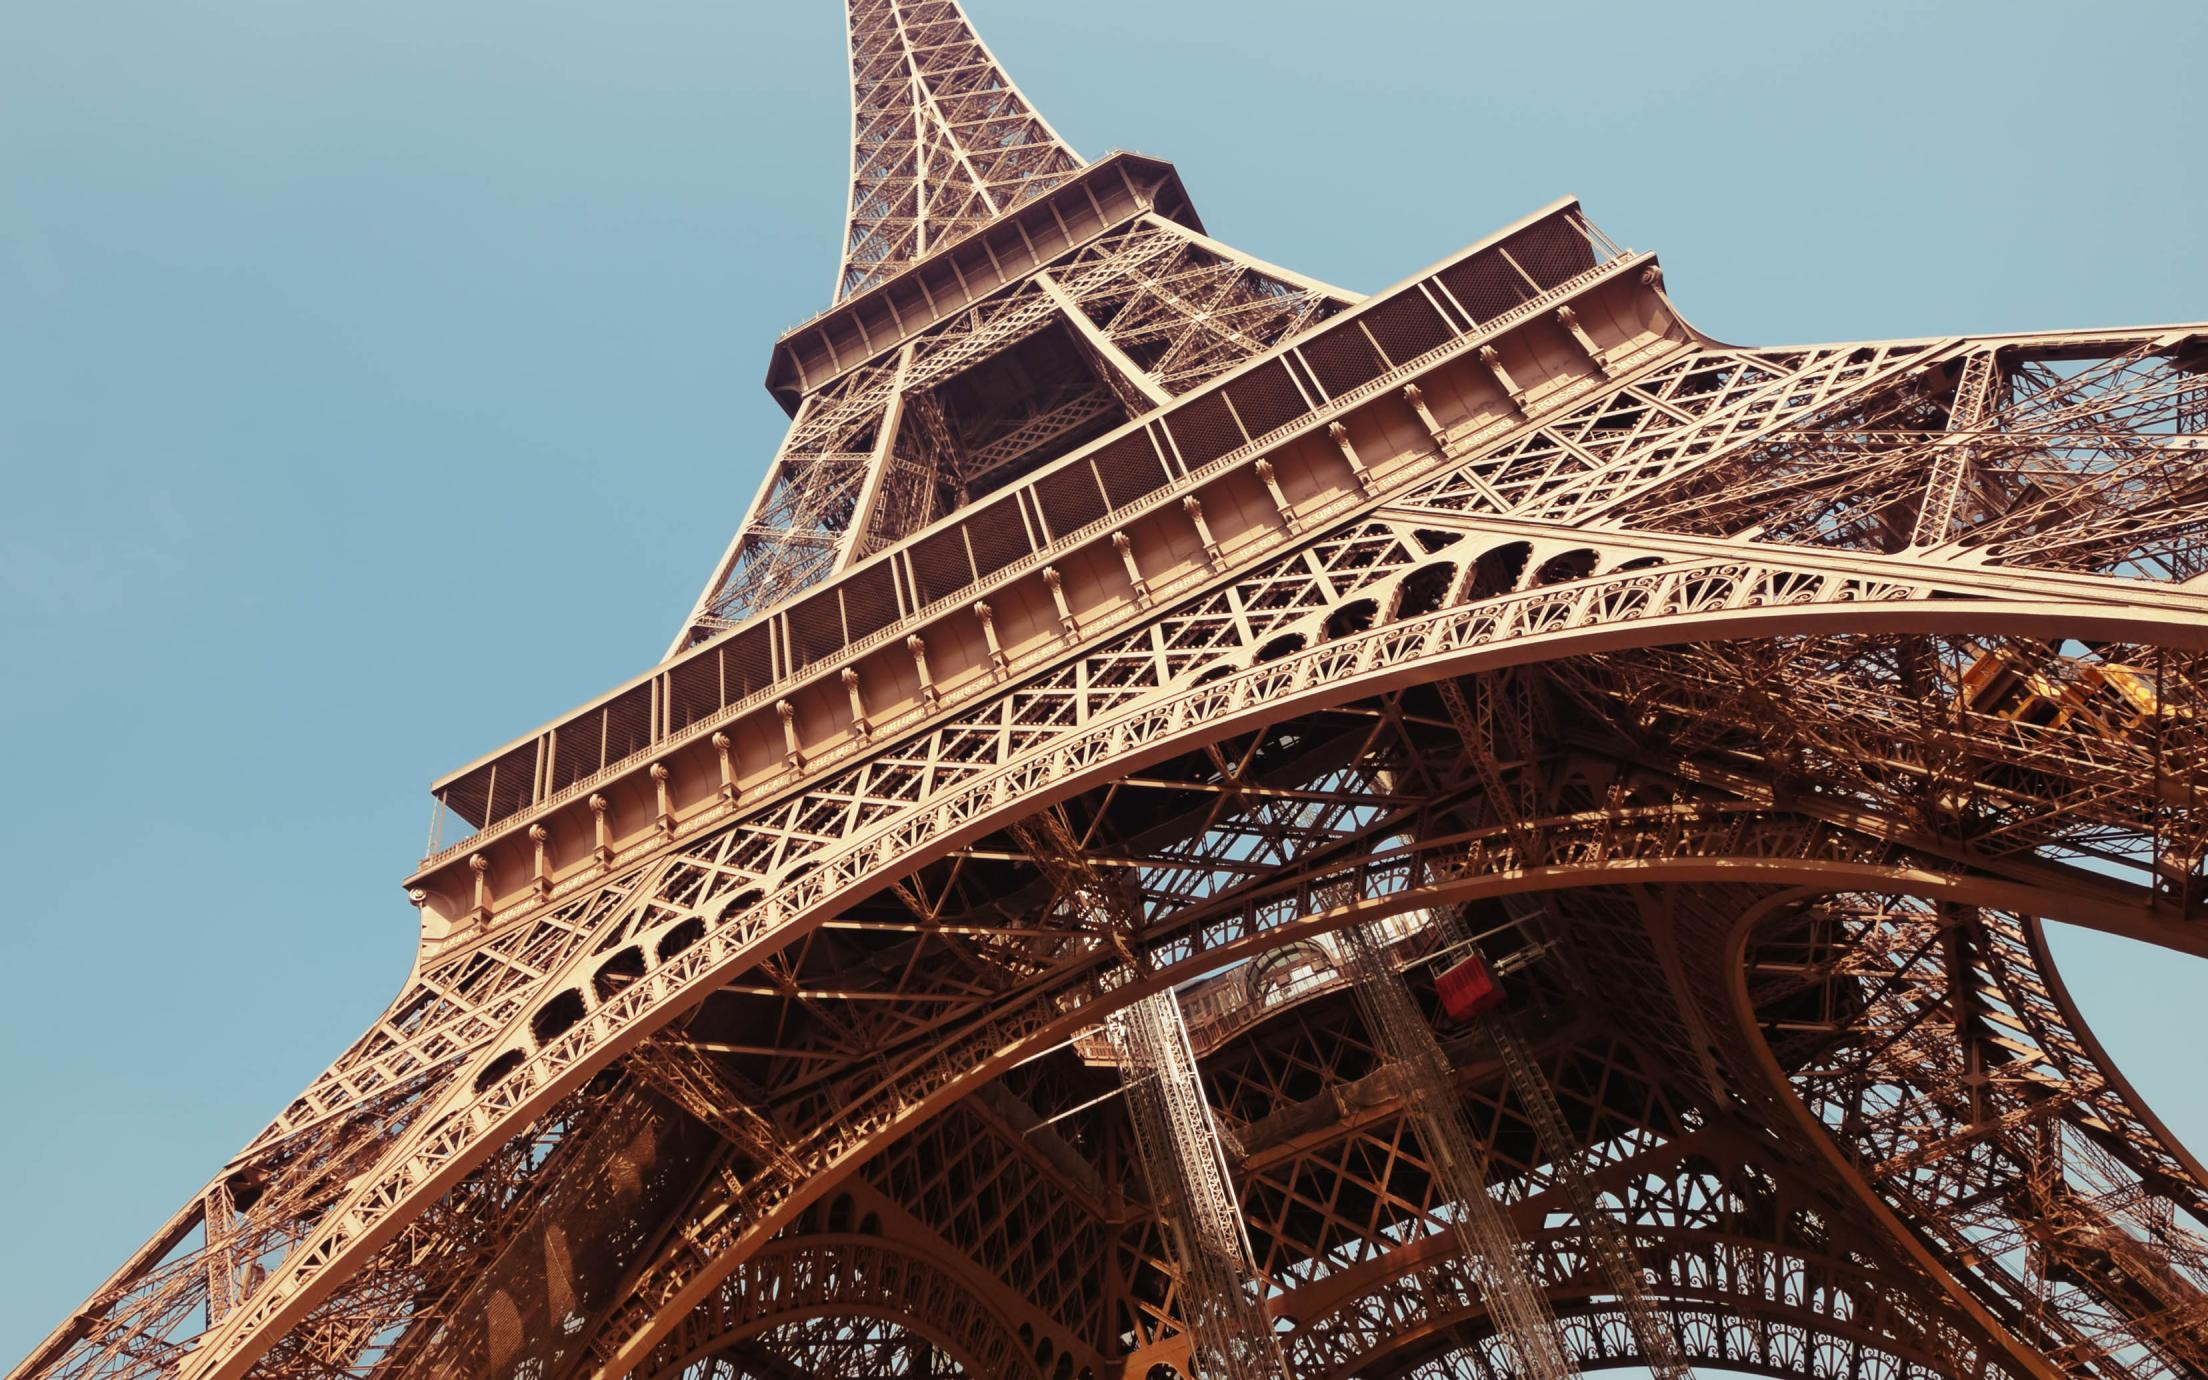 A picture of the Eiffel Tower taken by a student of the Languages and Culture (Romance Languages)